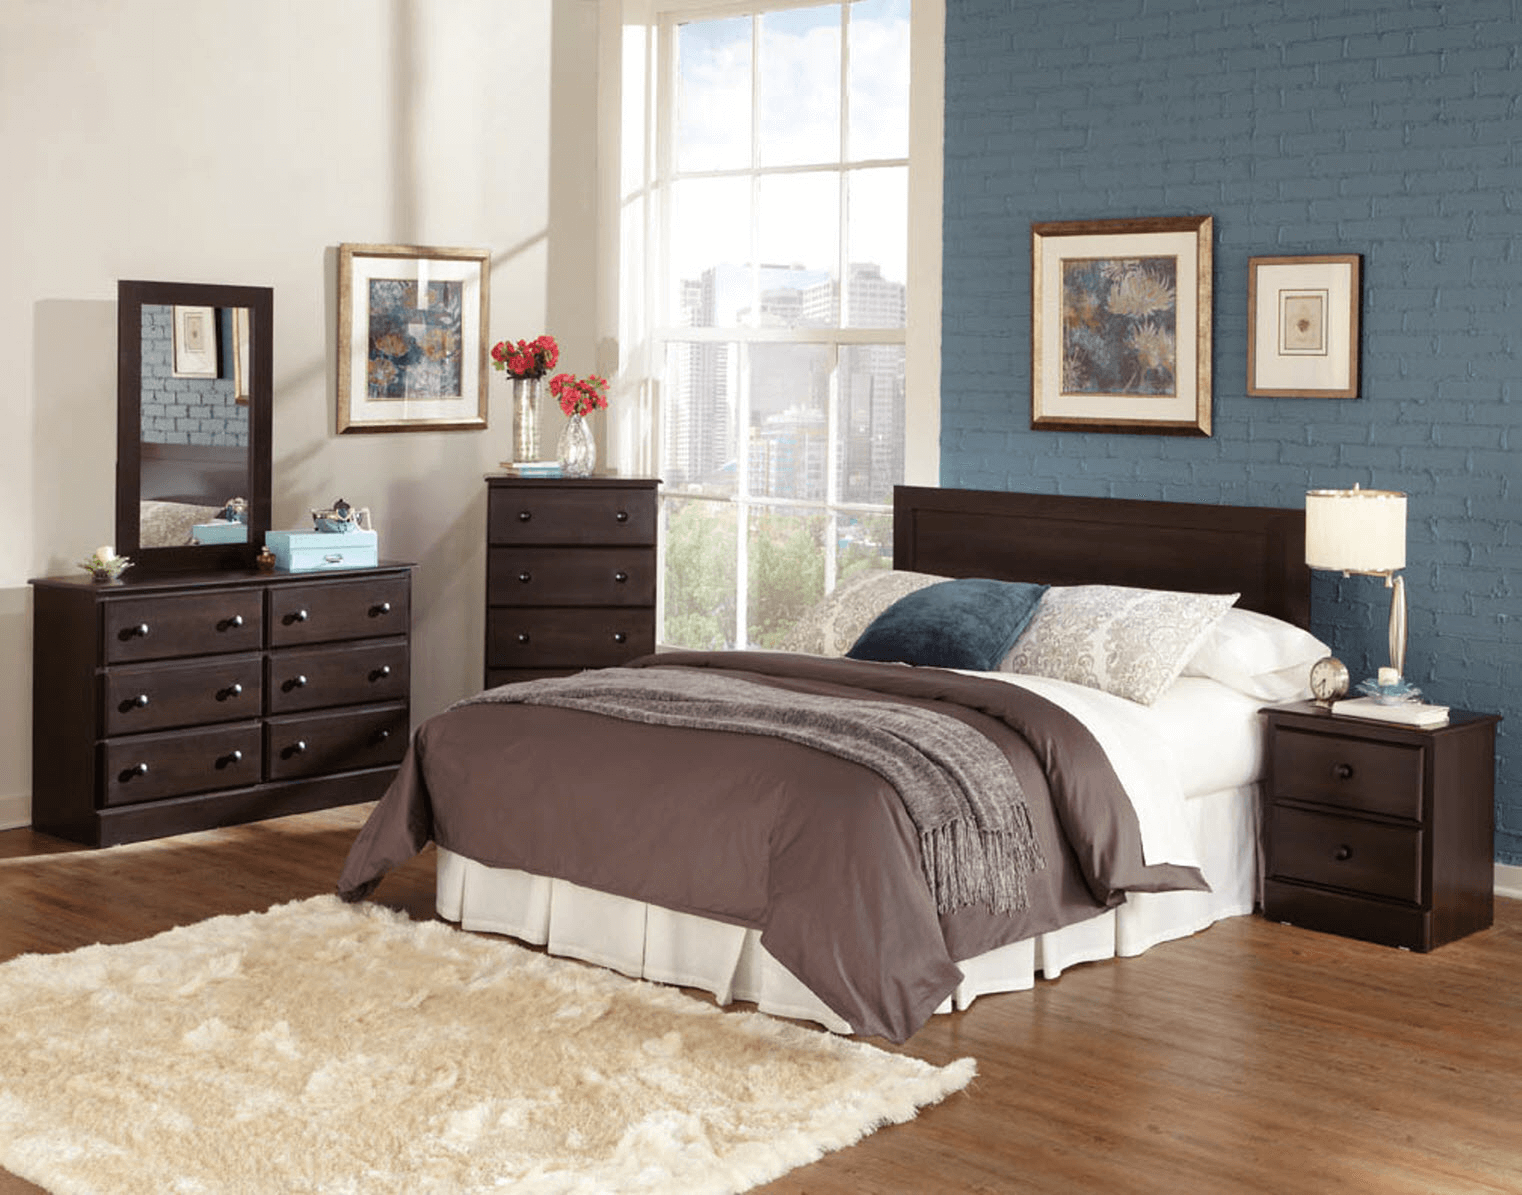 Blue bedroom wall colour schemes for cherry furniture sets